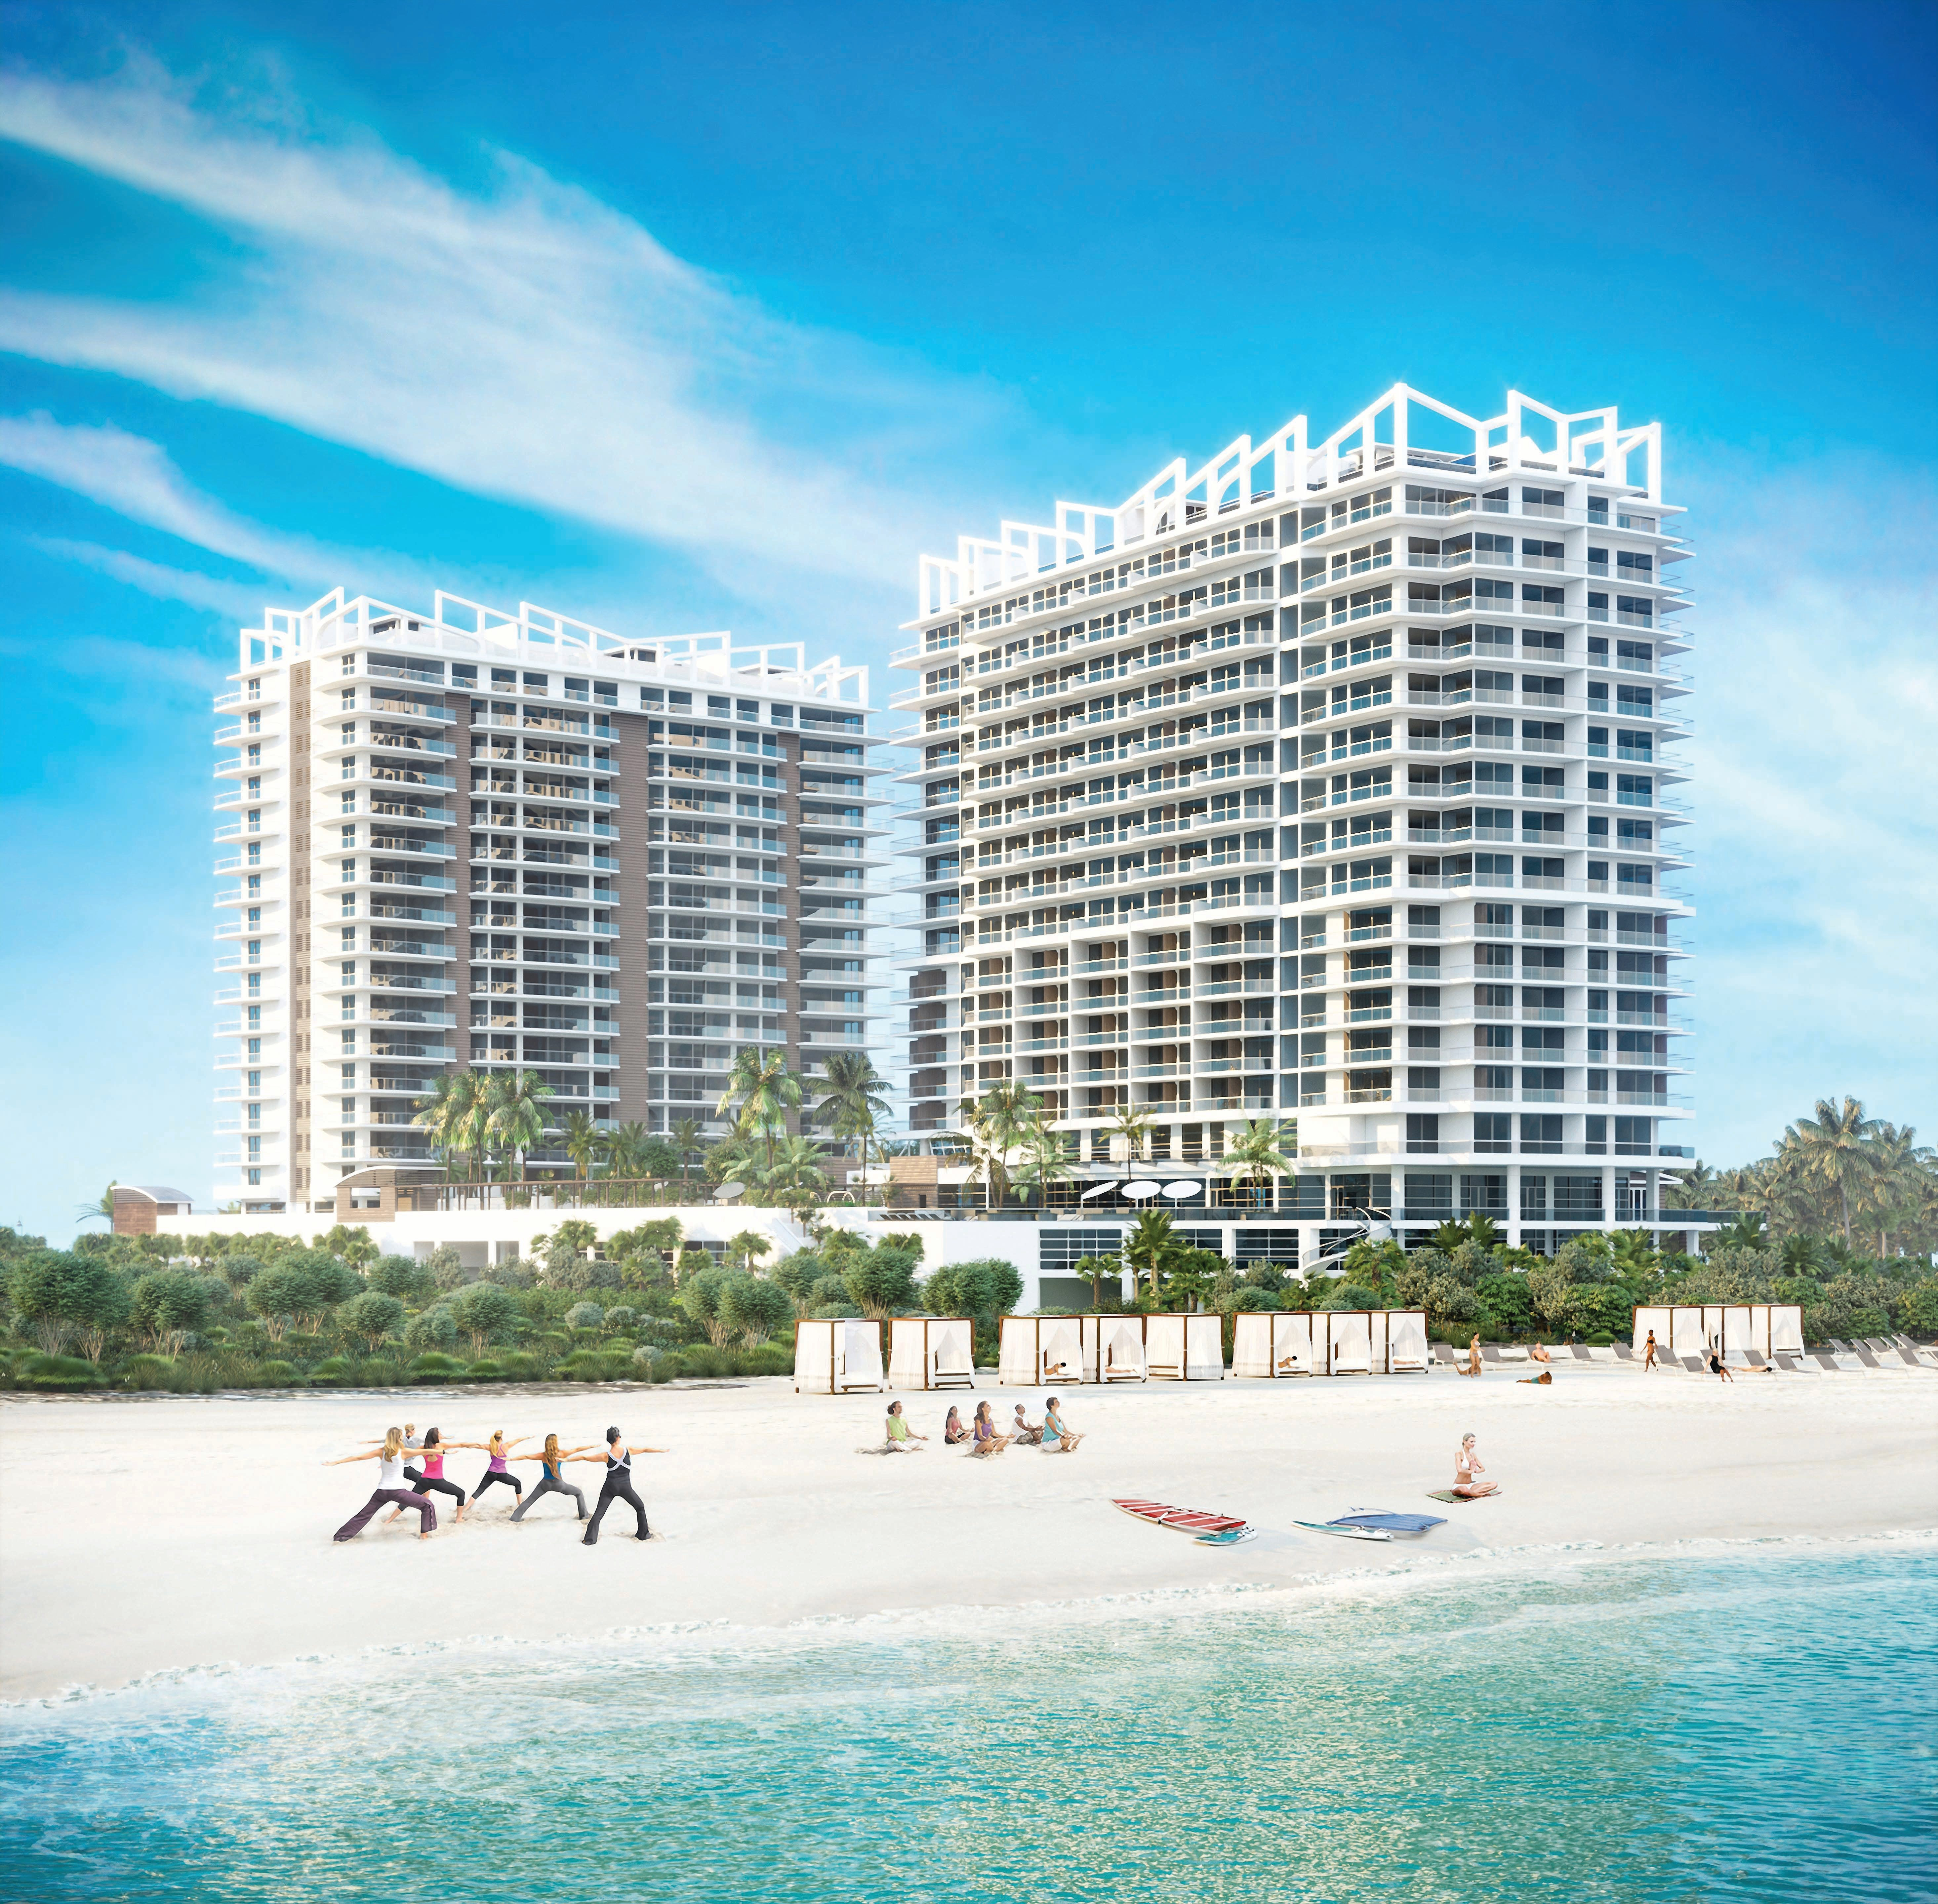 Singer Island is a quick drive to West Palm Beach, close to the main highways and 15 minutes from Palm Beach International airport.